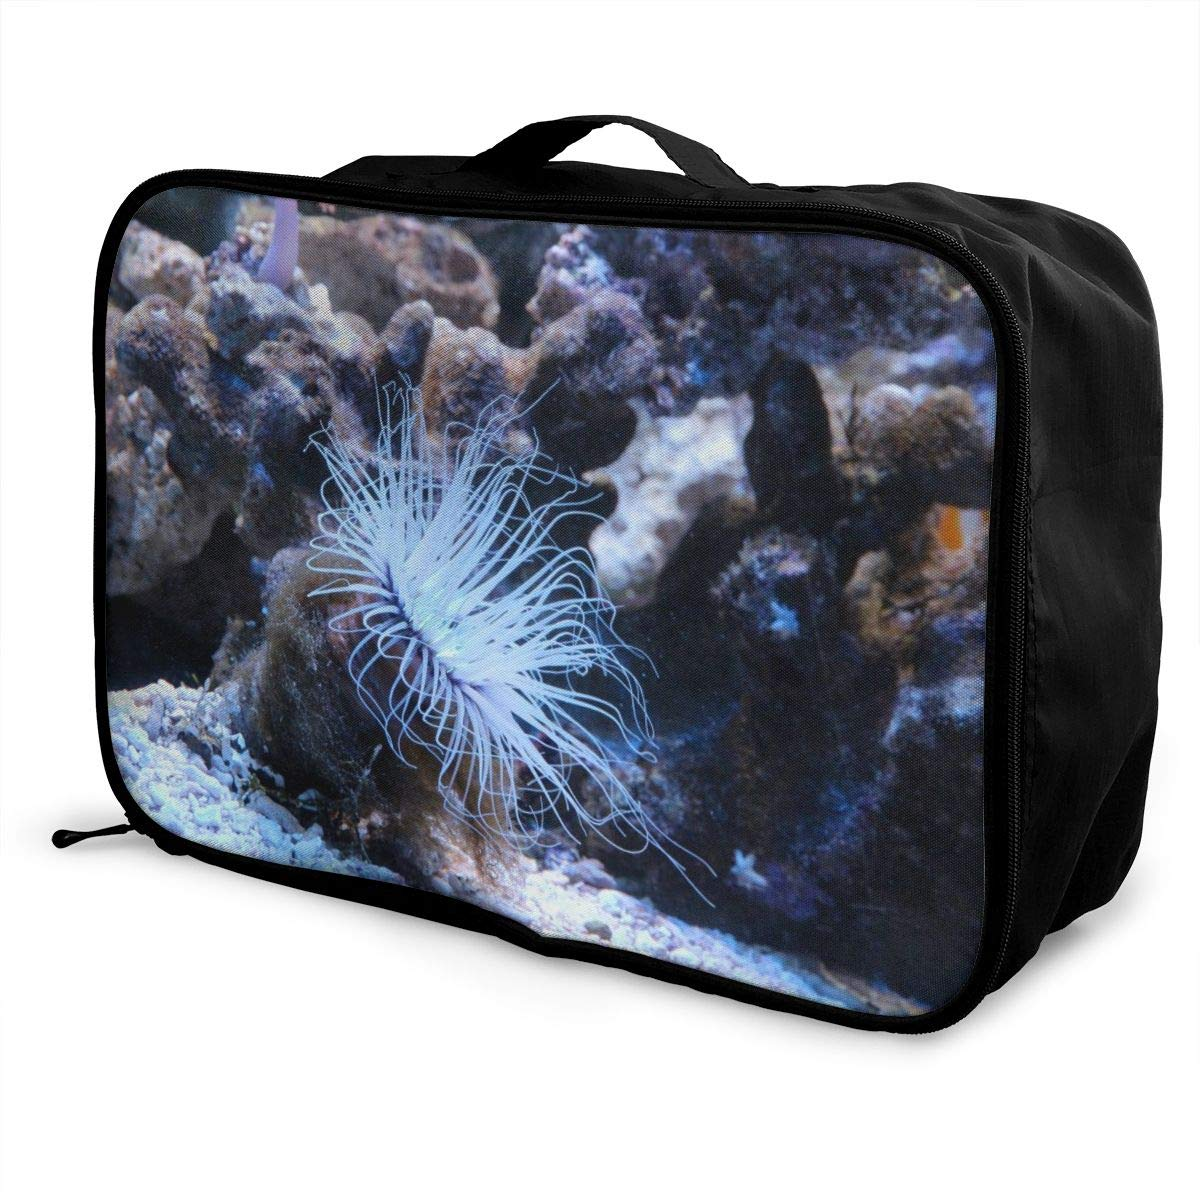 Anemone Coral Reef Travel Lightweight Waterproof Foldable Storage Carry Luggage Large Capacity Portable Luggage Bag Duffel Bag